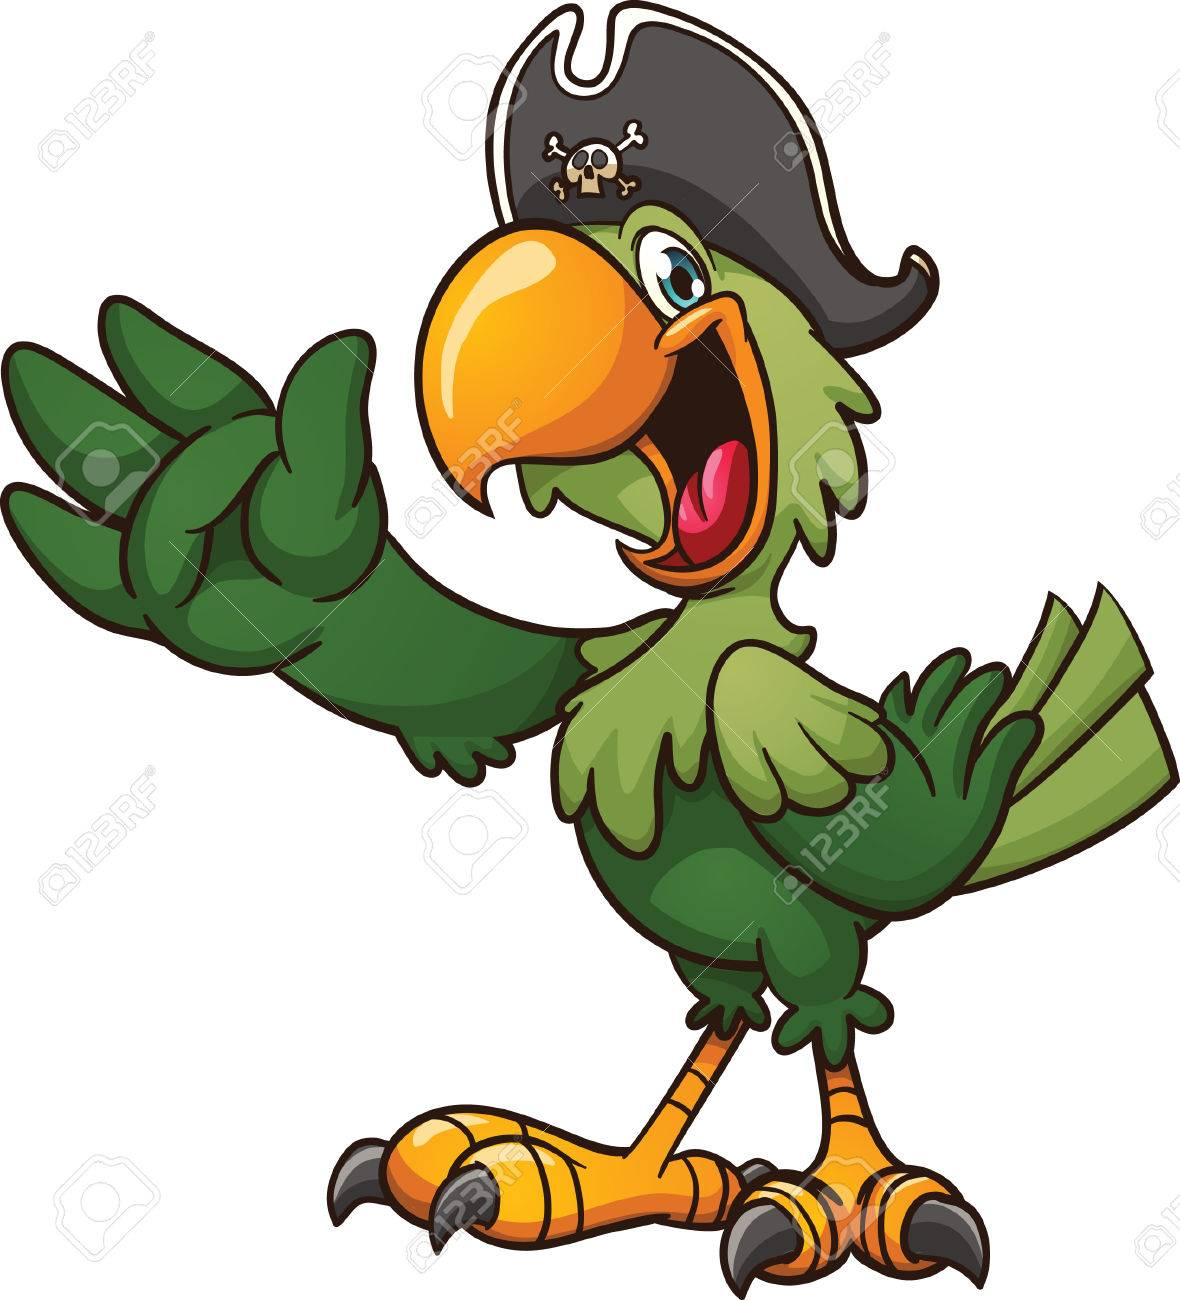 1180x1300 Cartoon Pirate Parrot Clip Art Illustration With Simple Gradients